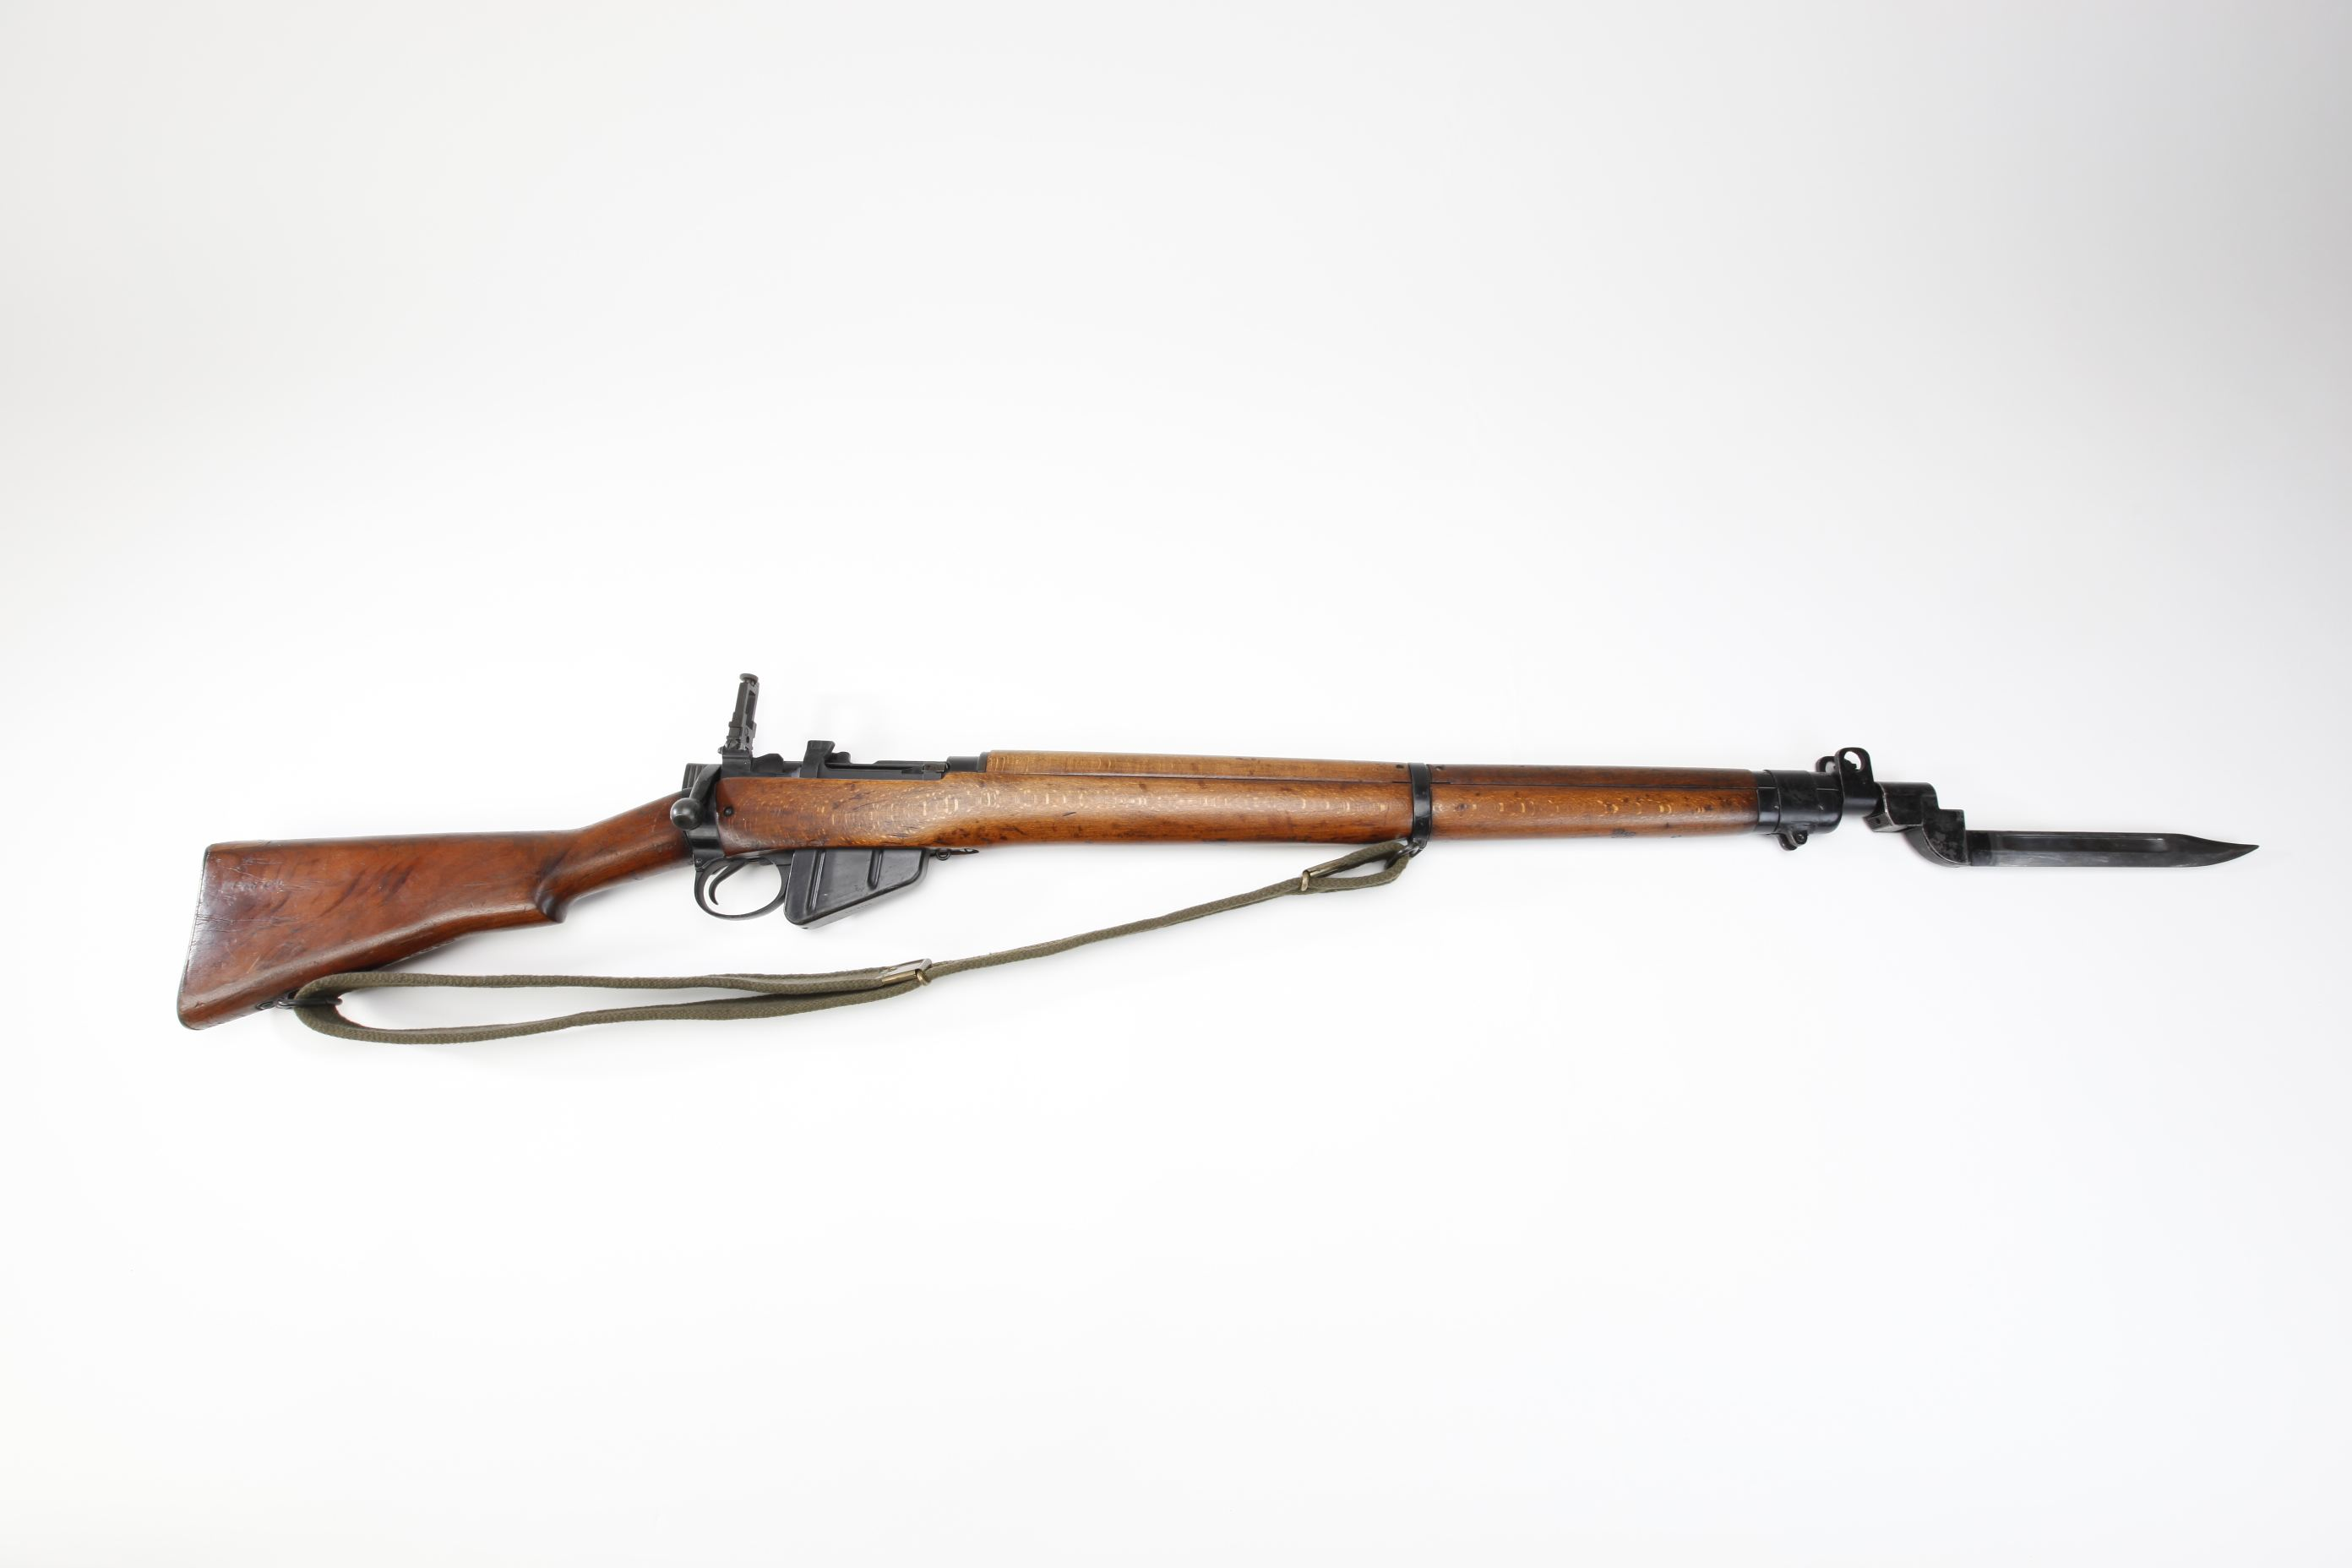 Savage SMLE No 4 Mk I 3 Bolt Action Rifle with bayonet